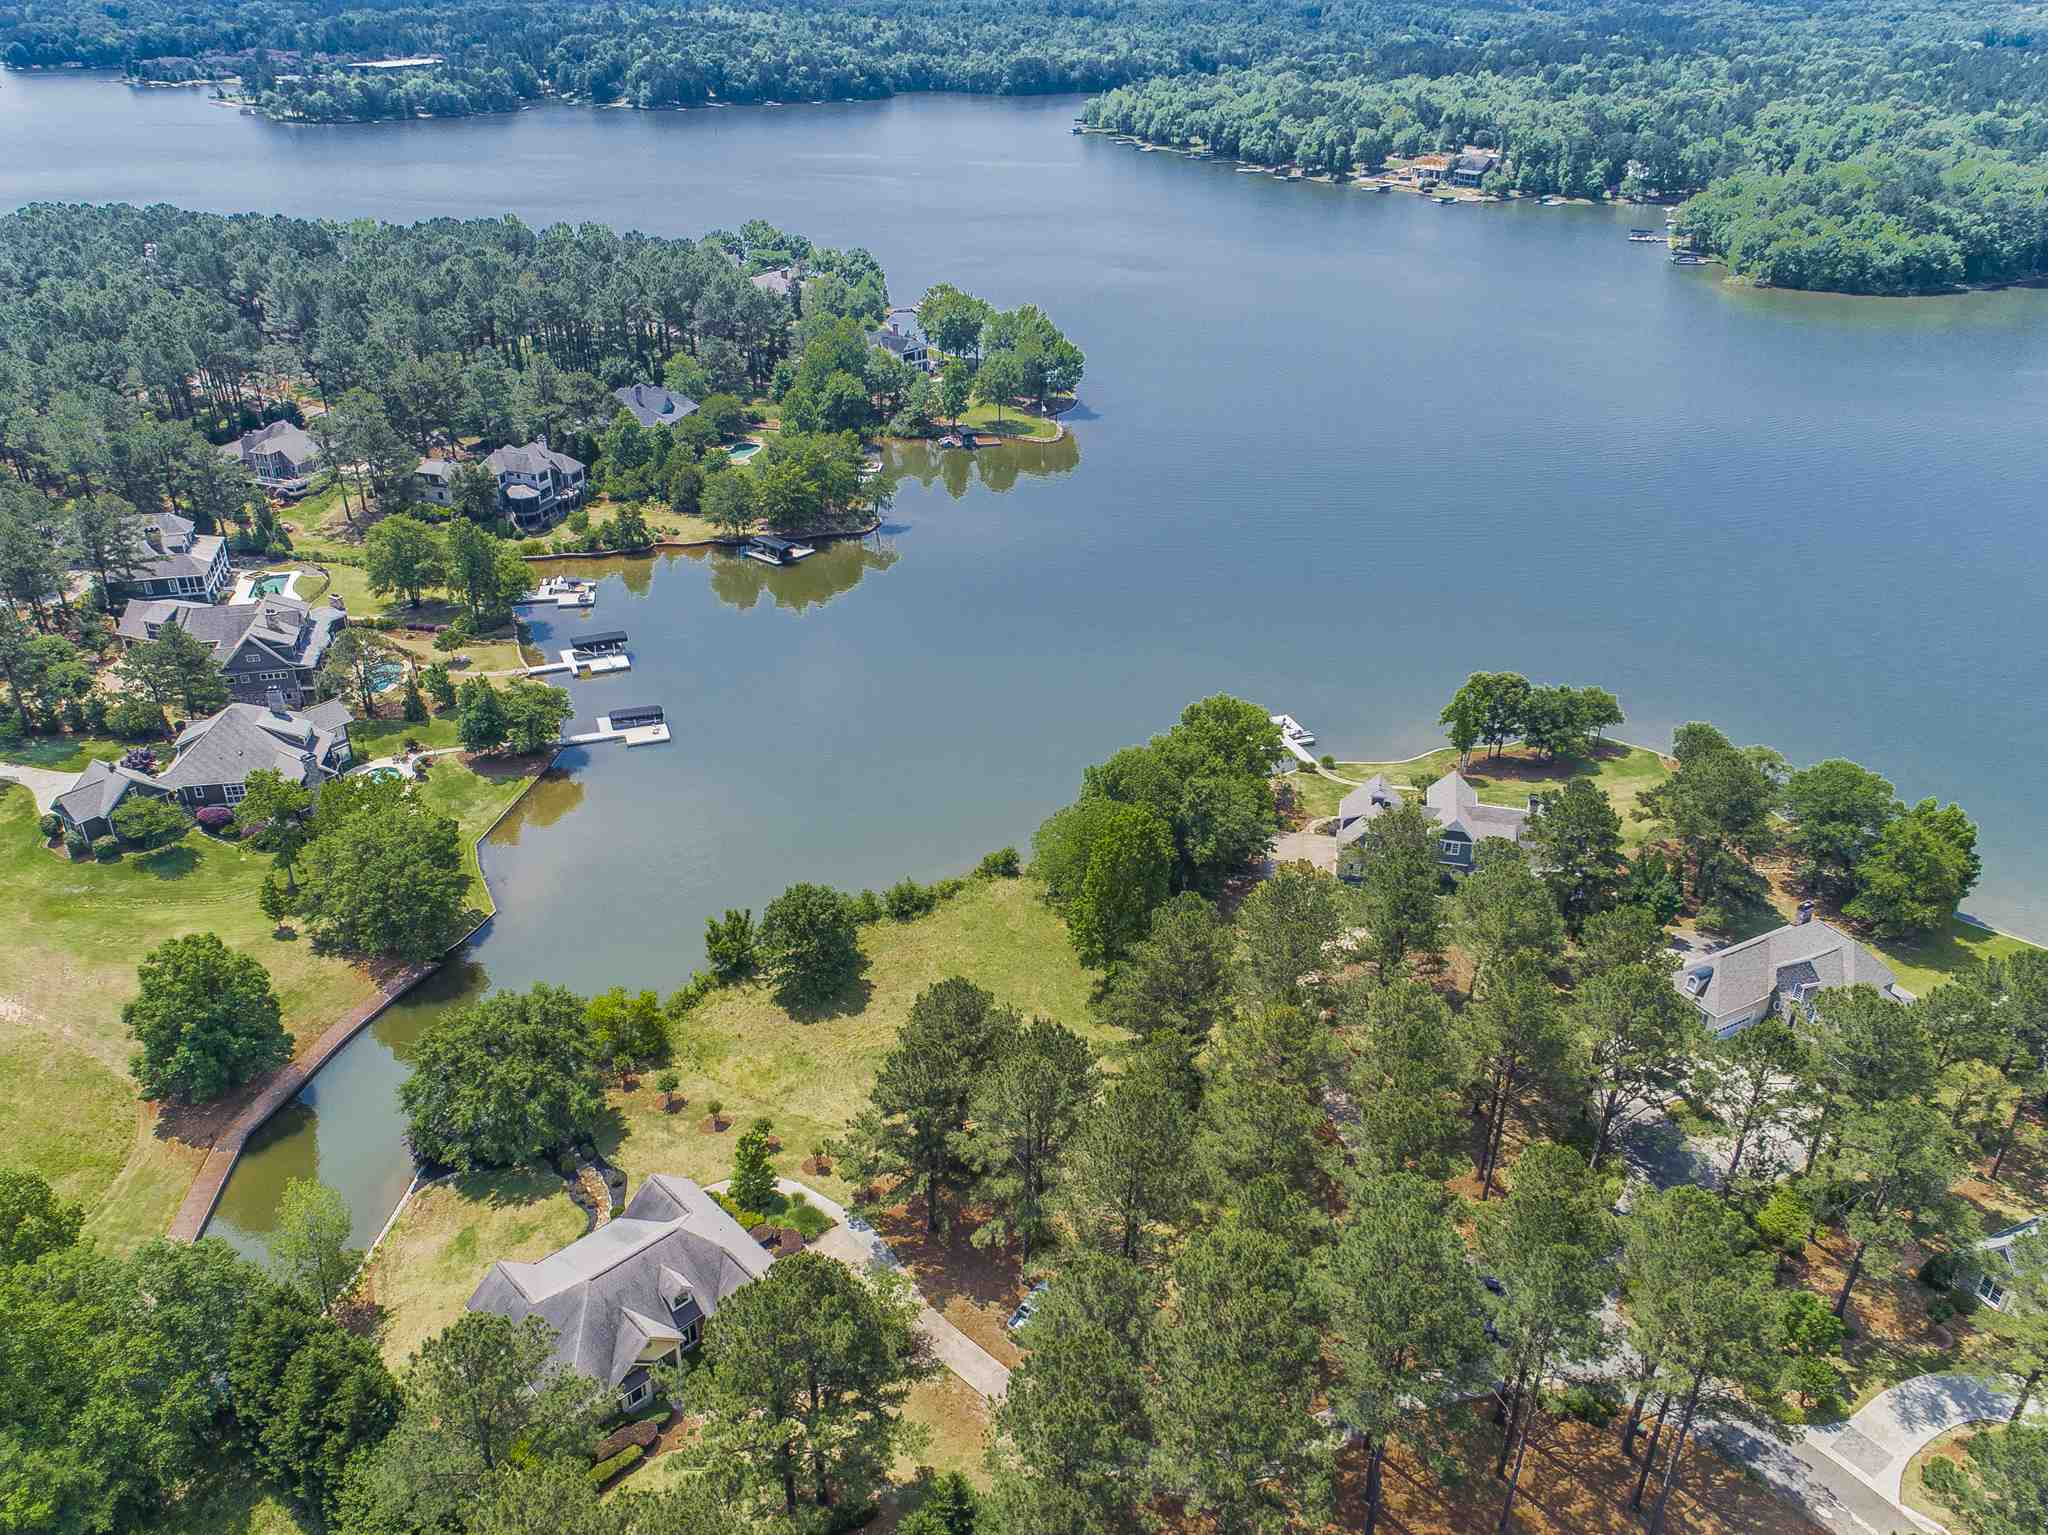 141 OKONI LANE AS, one of homes for sale in Lake Oconee